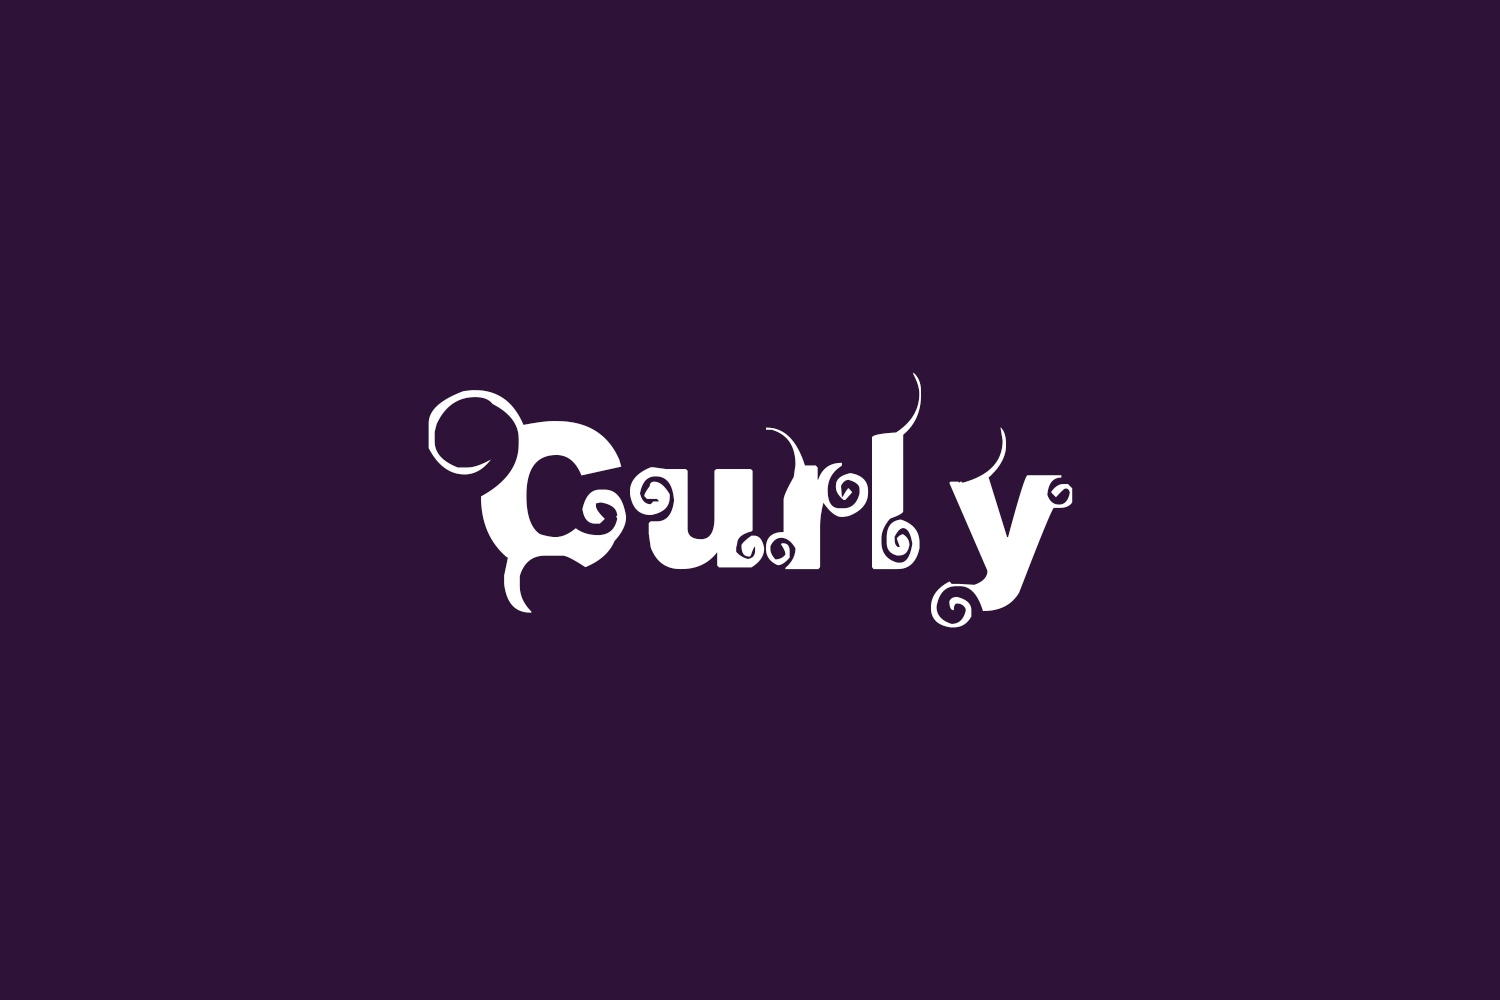 Curly Free Font